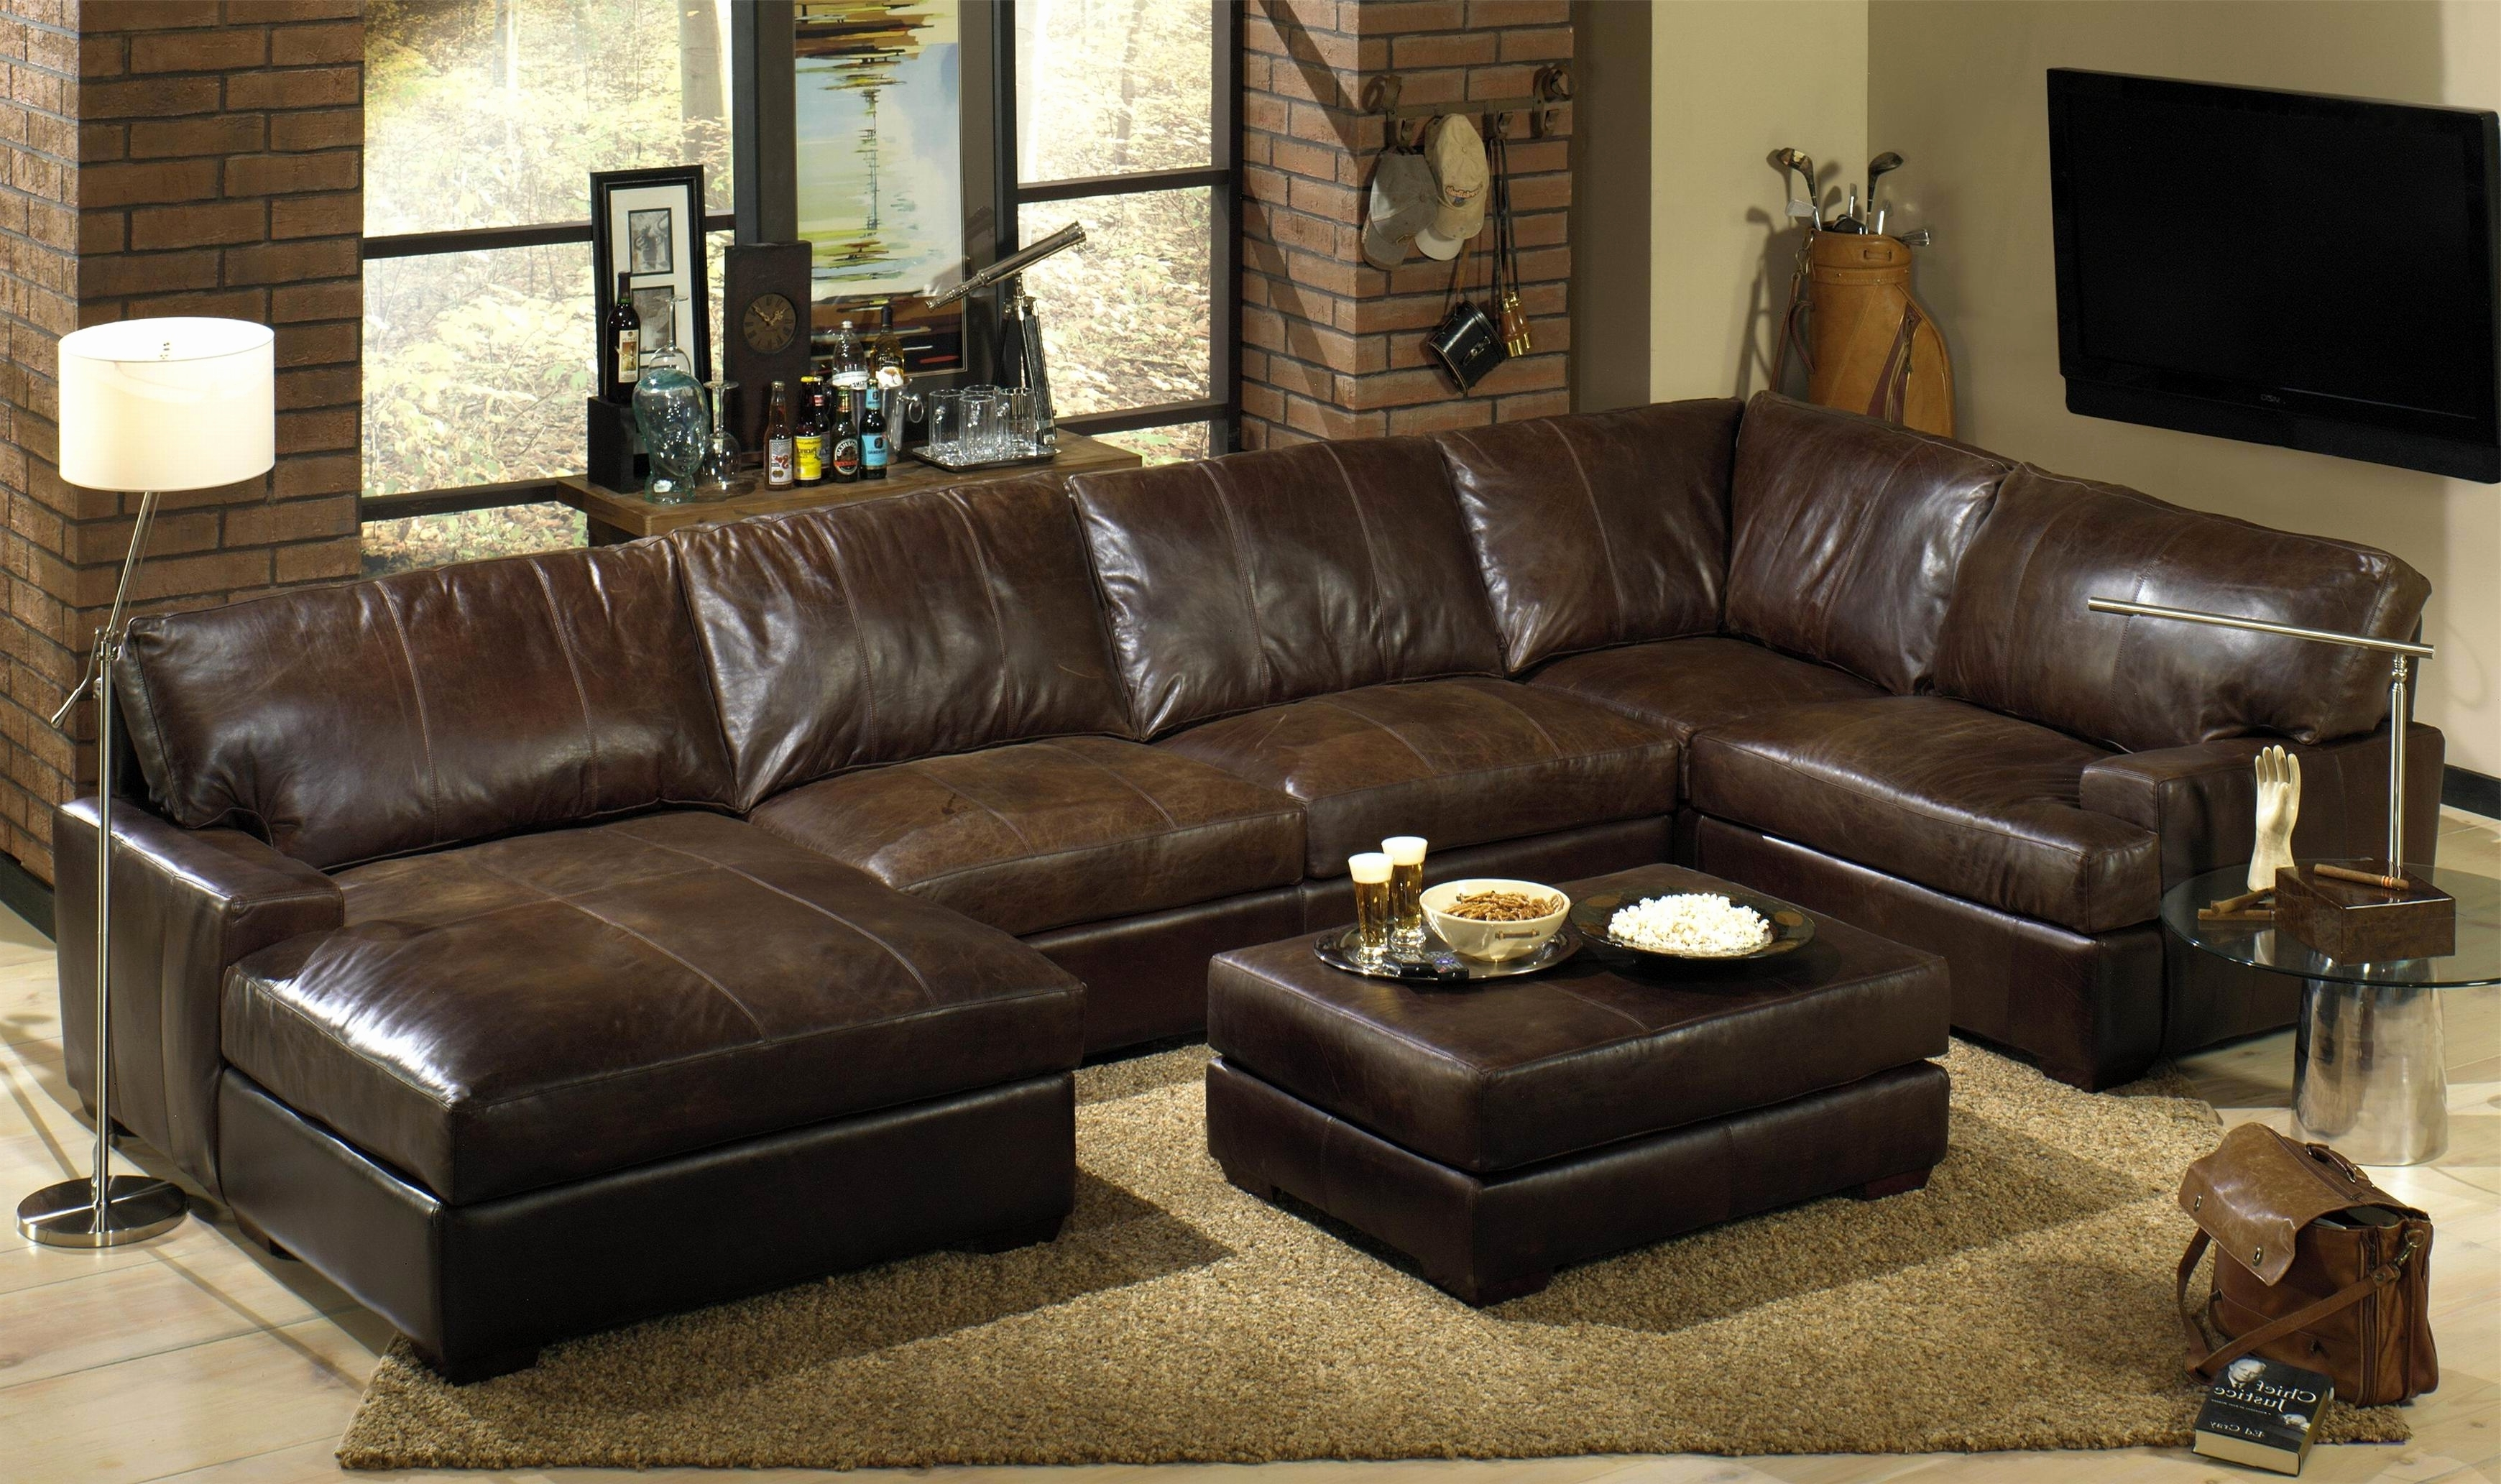 Microsuede Sectional Sofas Inside Well Known New Microsuede Sectional With Chaise 2018 – Couches Ideas (View 15 of 15)